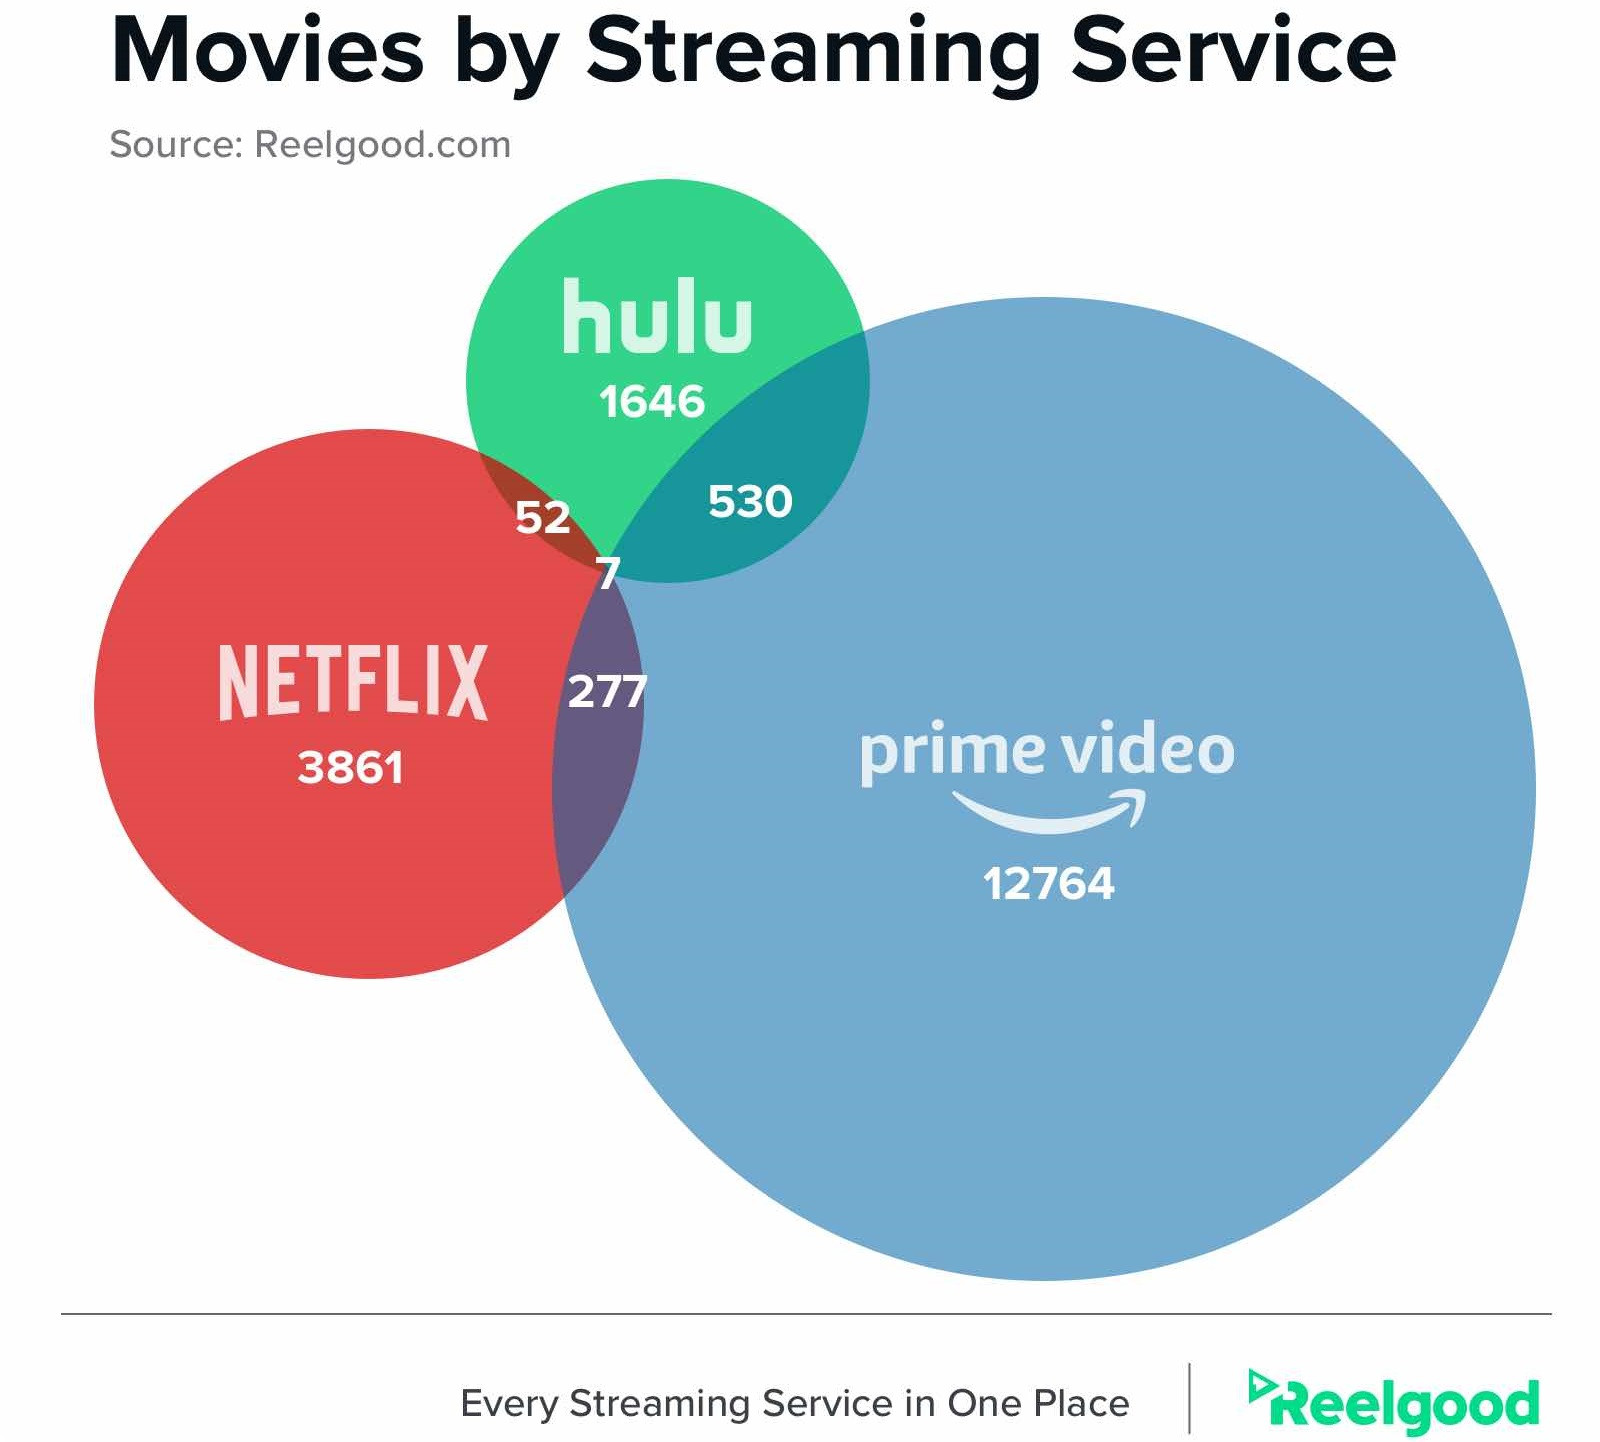 Amazon and Hulu Overlap Most on Films, Amazon and Netflix on TV